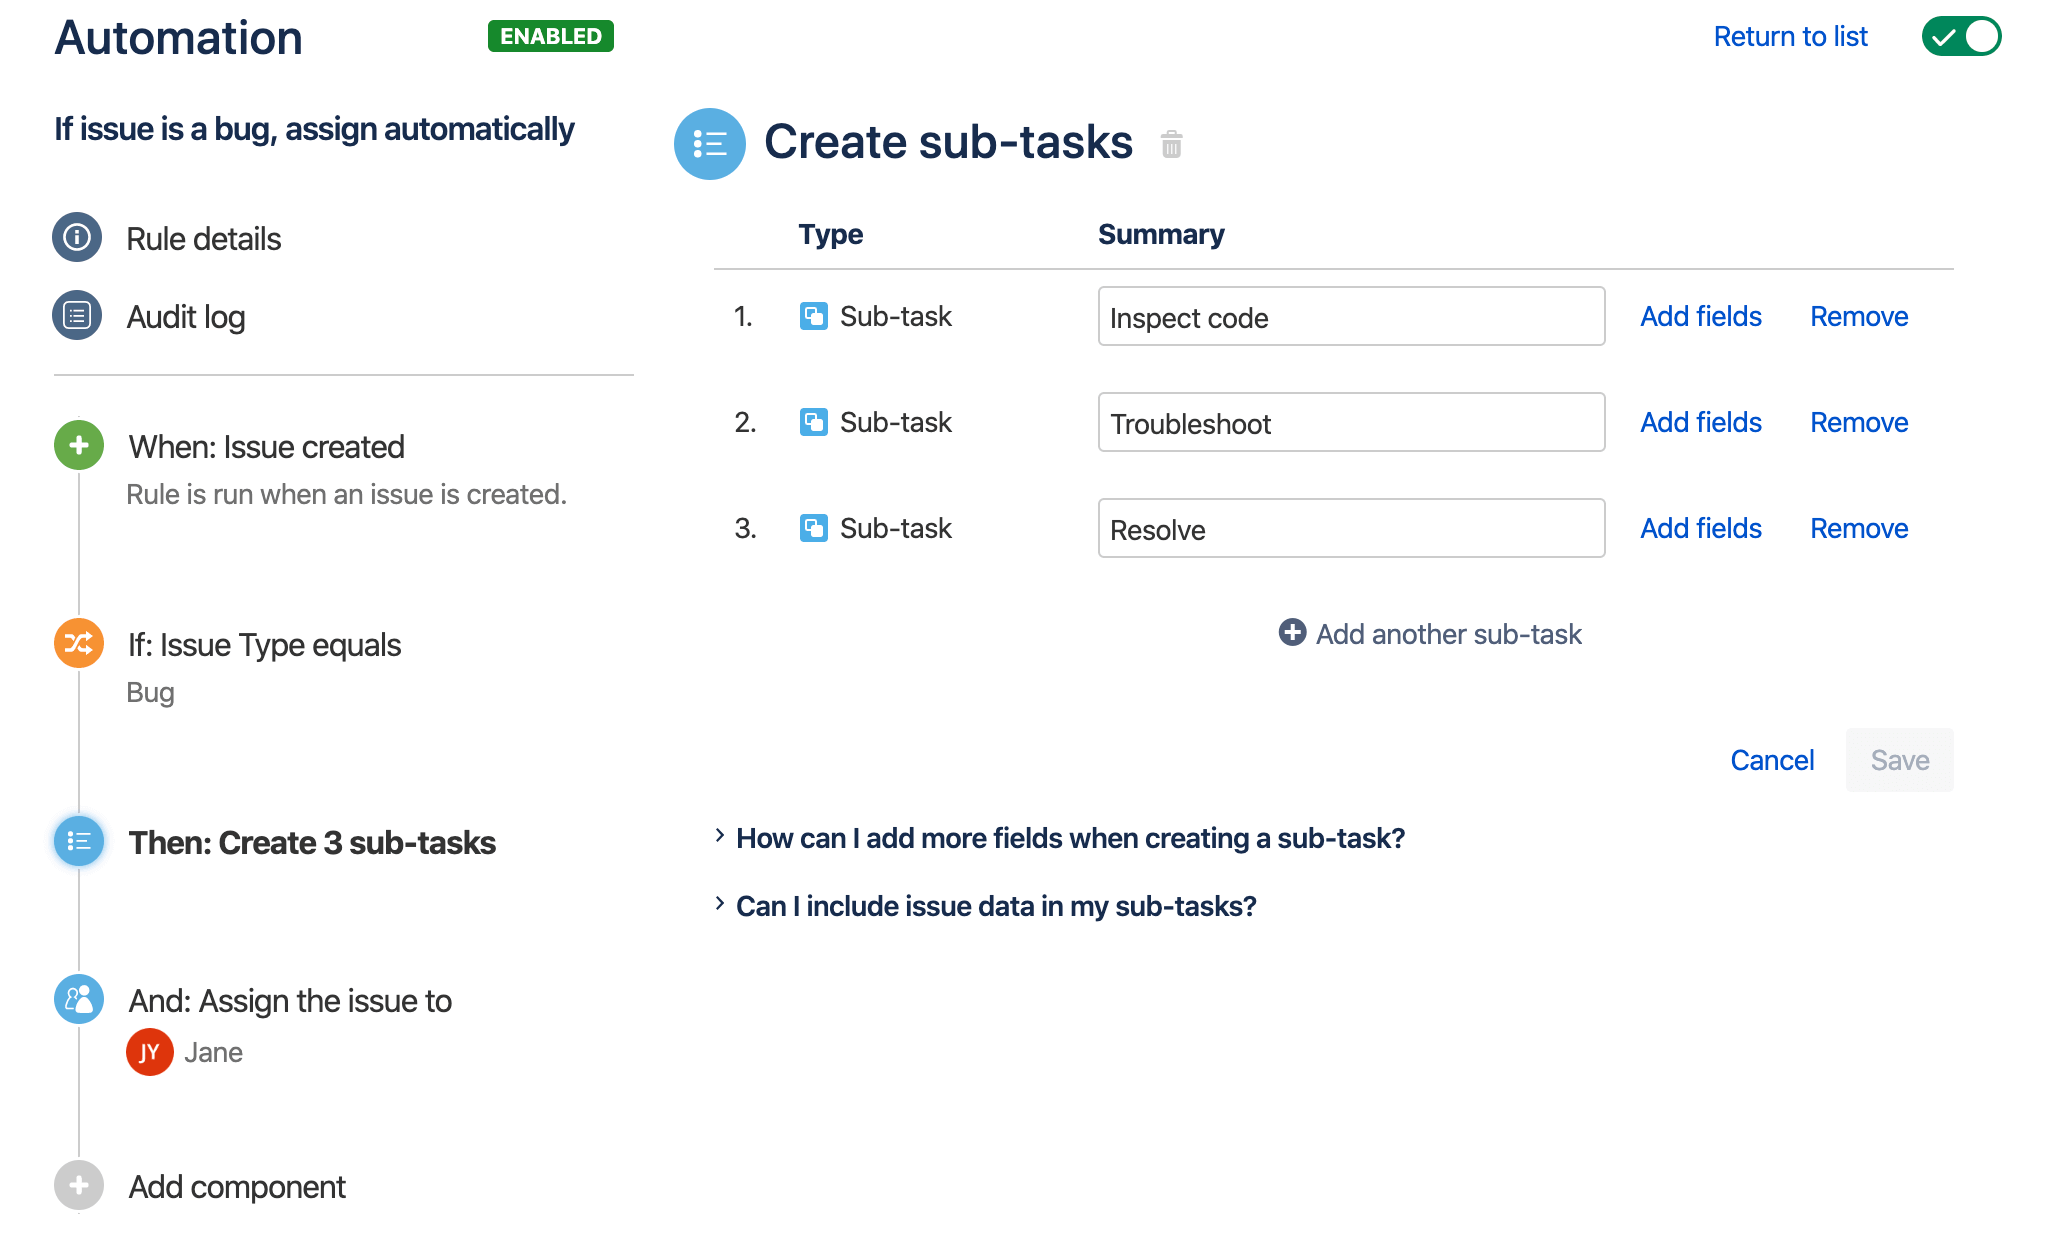 An example of the rule builder, displaying a simple rule to automatically add sub-tasks to any new bugs, and assign them to a user.